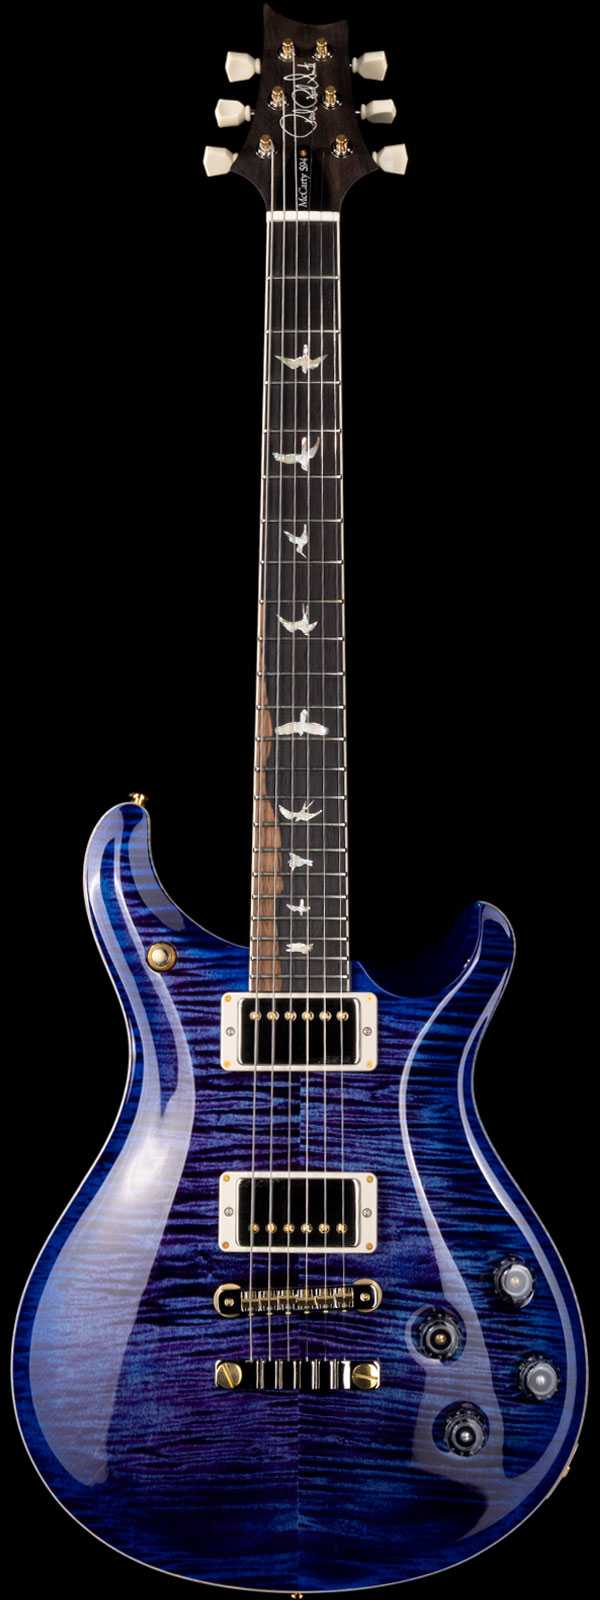 PRS Wood Library McCarty 594 Flame Maple 10 Top Brazilian Rosewood Board Violet Blue Burst